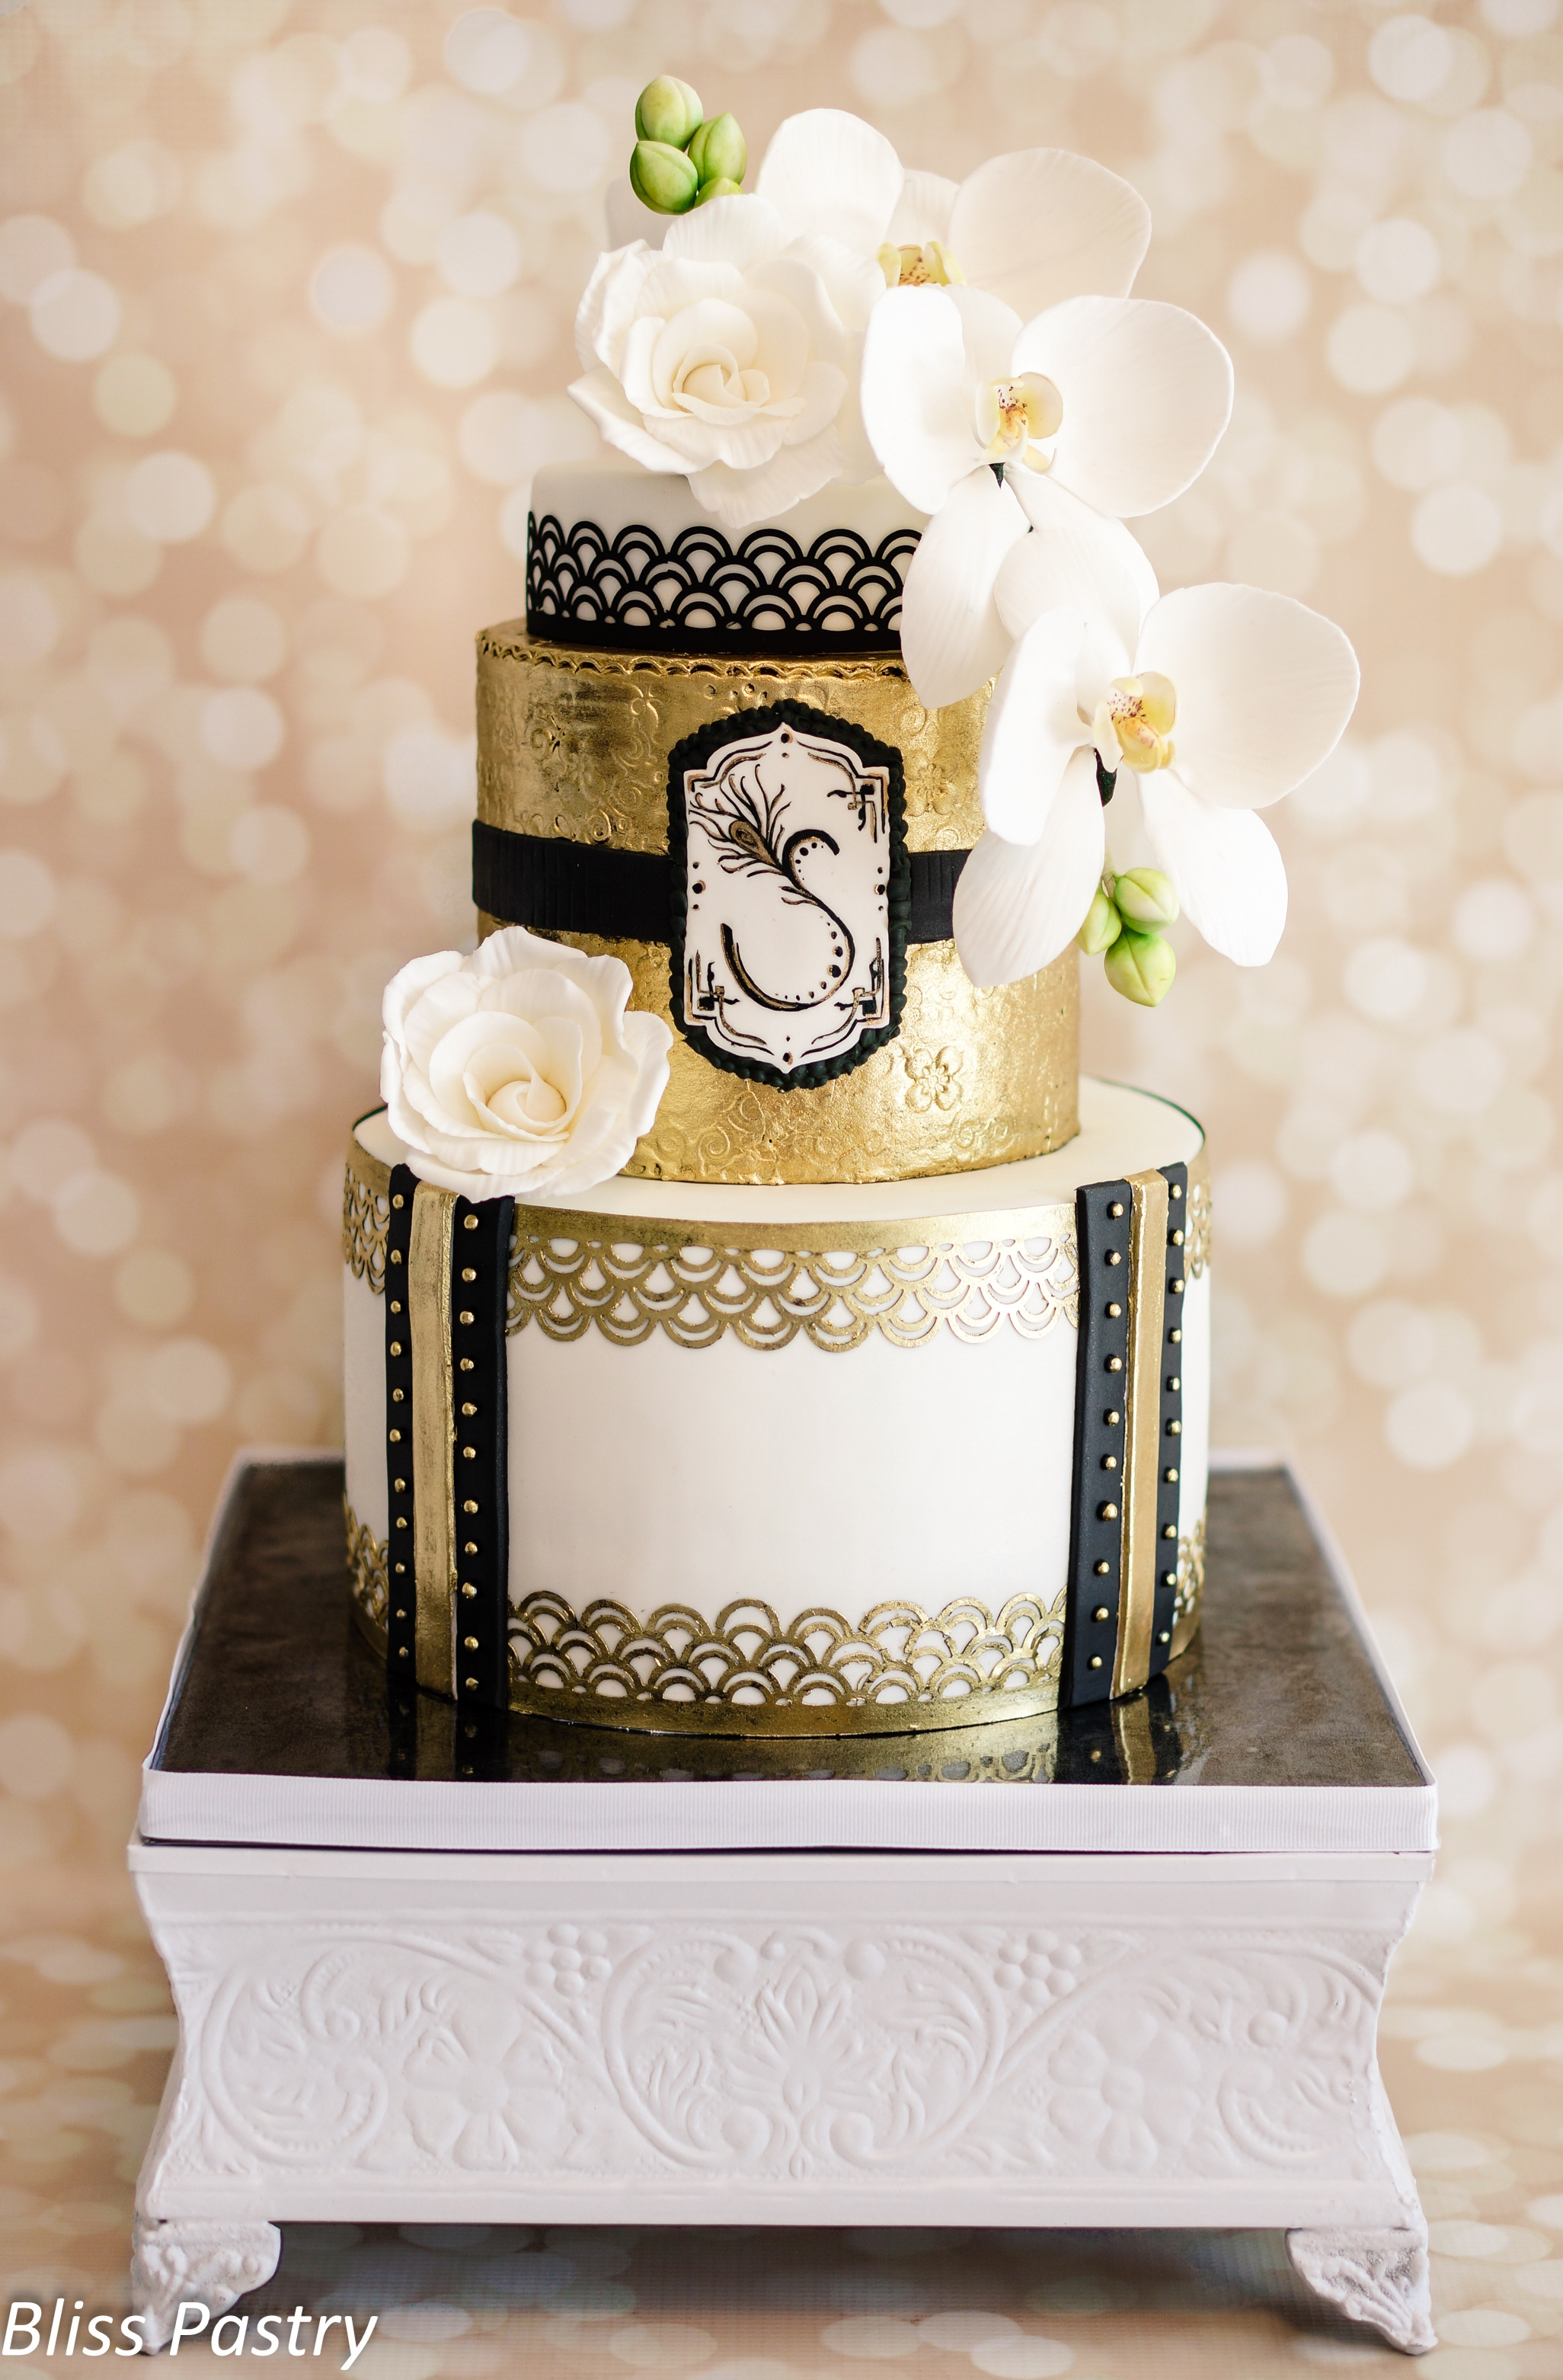 Art Deco Wedding Cake Black And Gold : Top Art Deco Cakes - CakeCentral.com